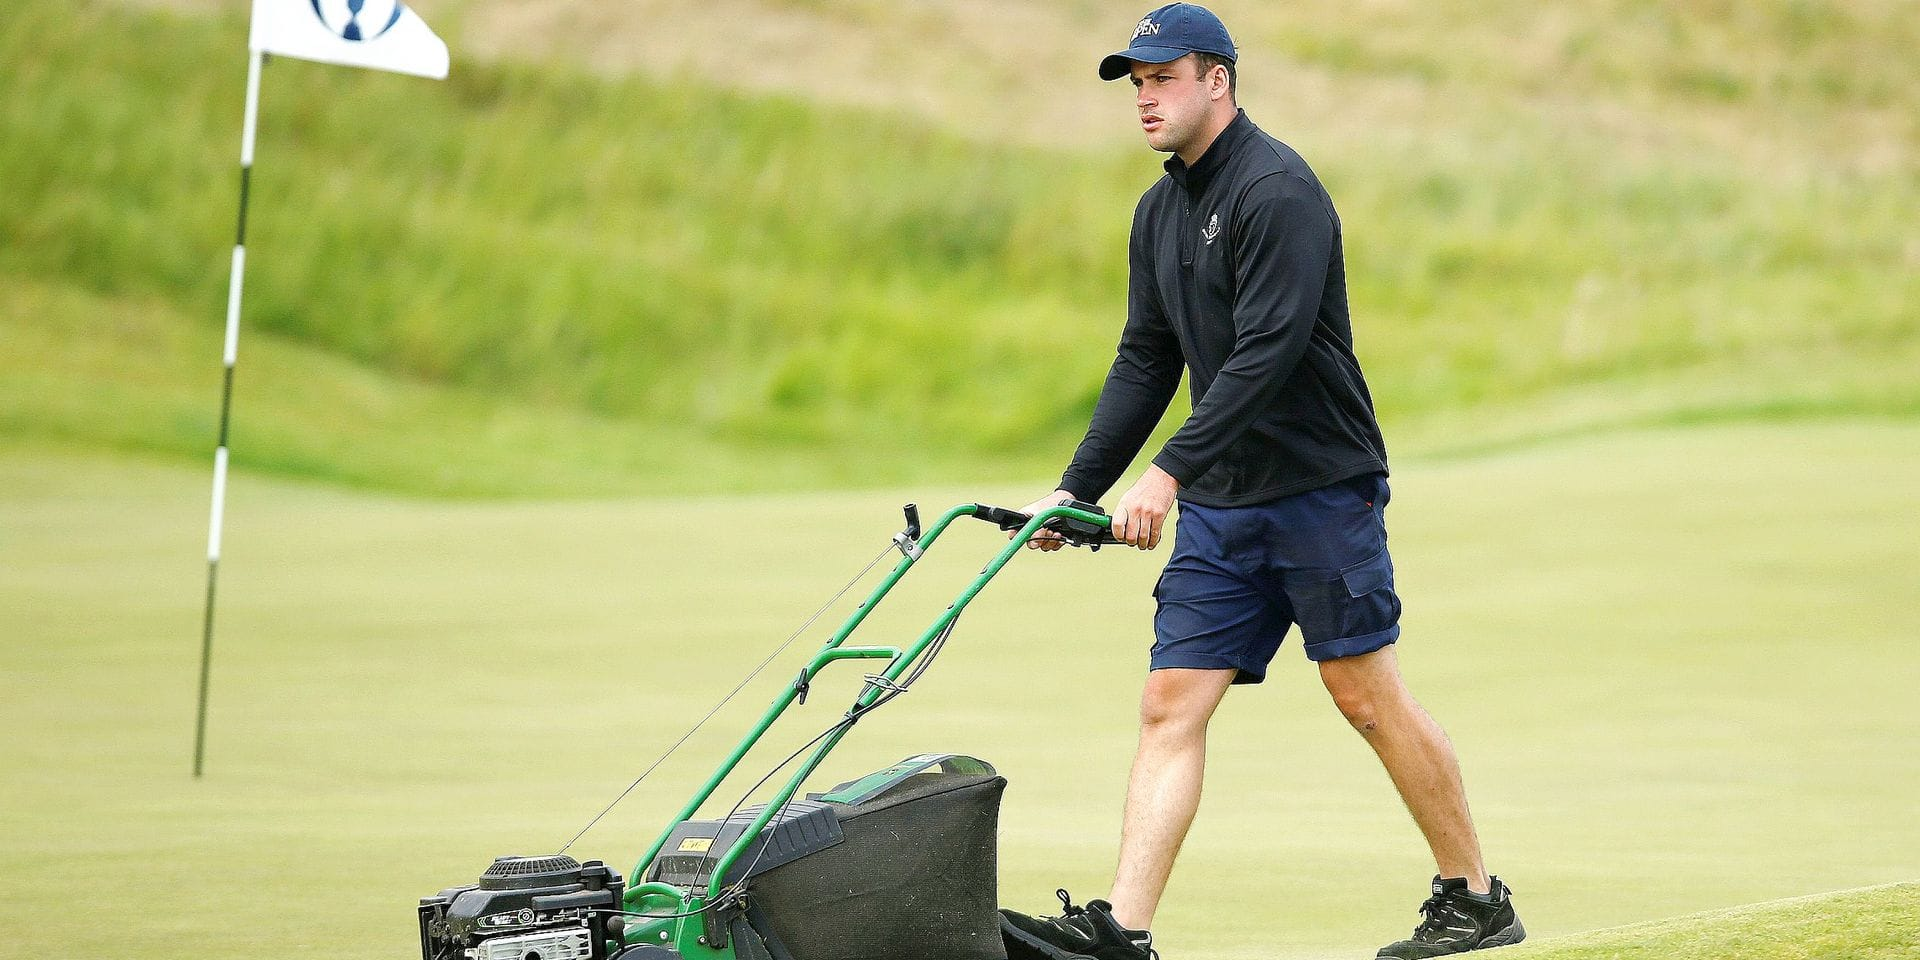 Golf - The 146th Open Championship - Royal Birkdale - Southport, Britain - July 19, 2017 Greenkeeper cuts the grass during a practice round REUTERS/Paul Childs © PHOTO NEWS / PICTURE NOT INCLUDED IN THE CONTRACTS ! only BELGIUM !